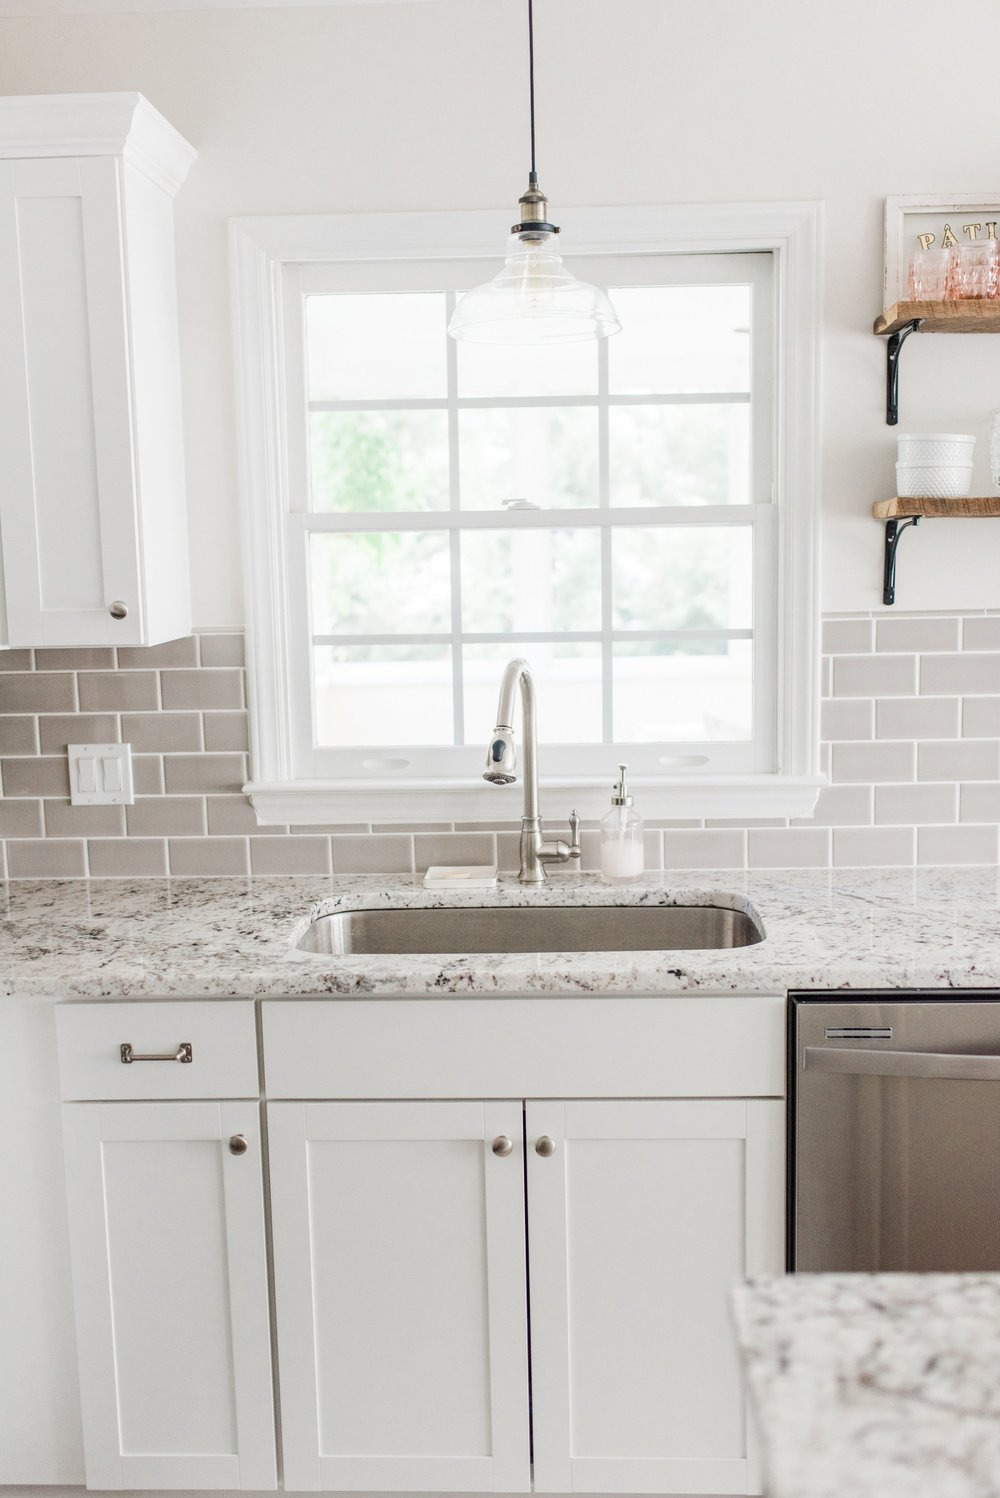 Unfinished Cabinet Doors Lowes Lovely Lowe S Stock Cabinets Review